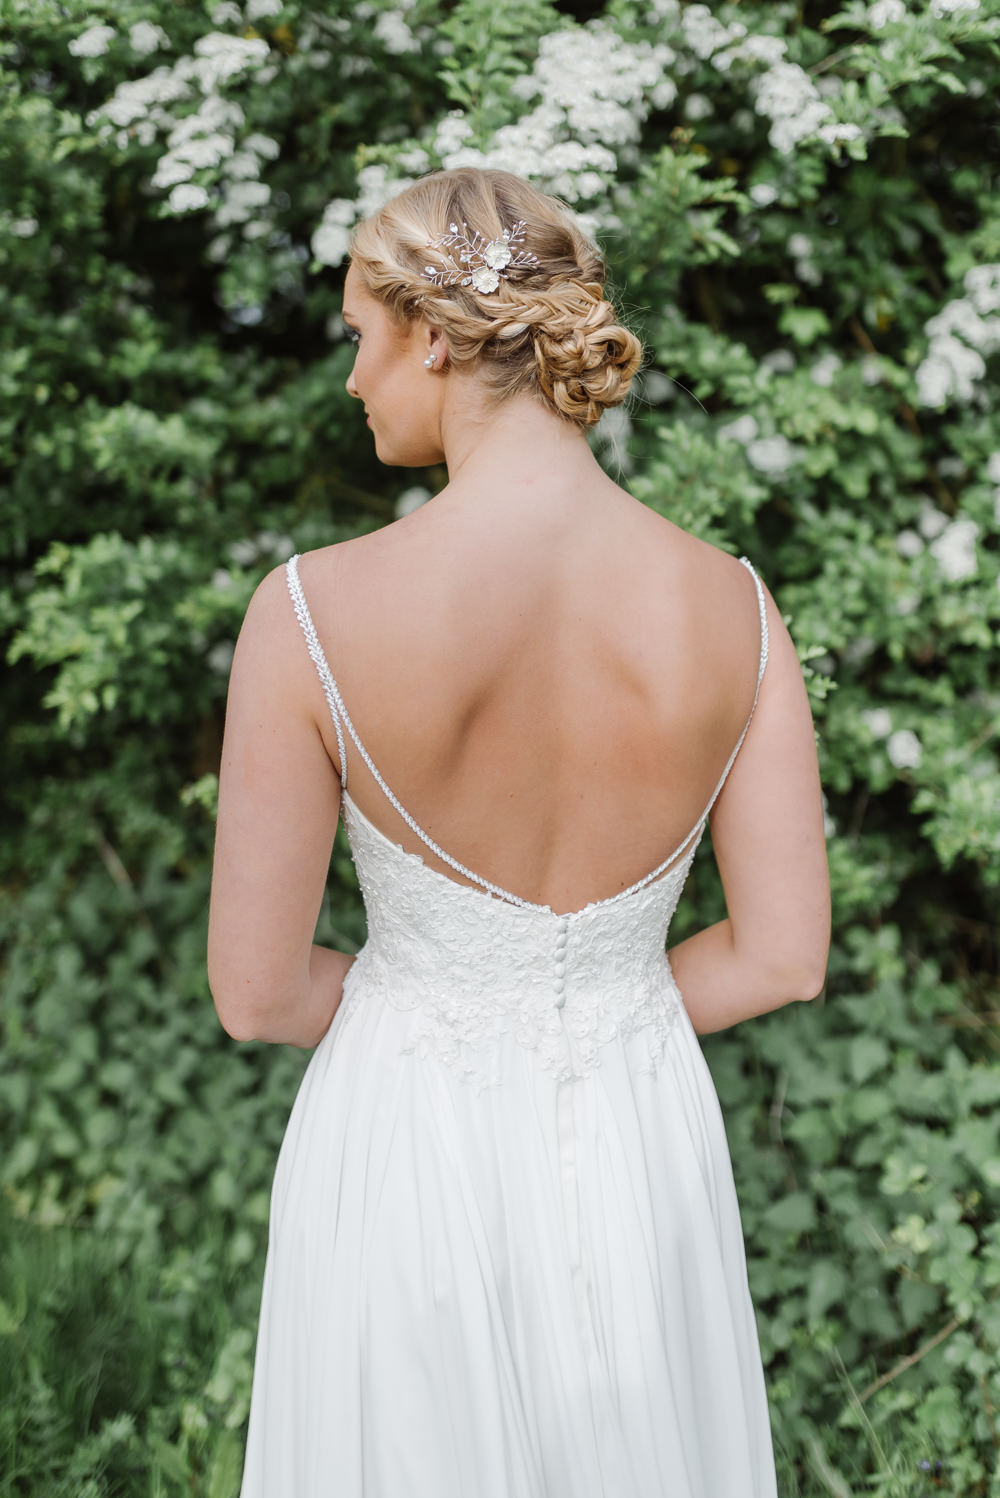 Hair Bride Bridal Up Do Style Plaits Braids Hairpiece Grey Violet Wedding Ideas Chloe Ely Photography